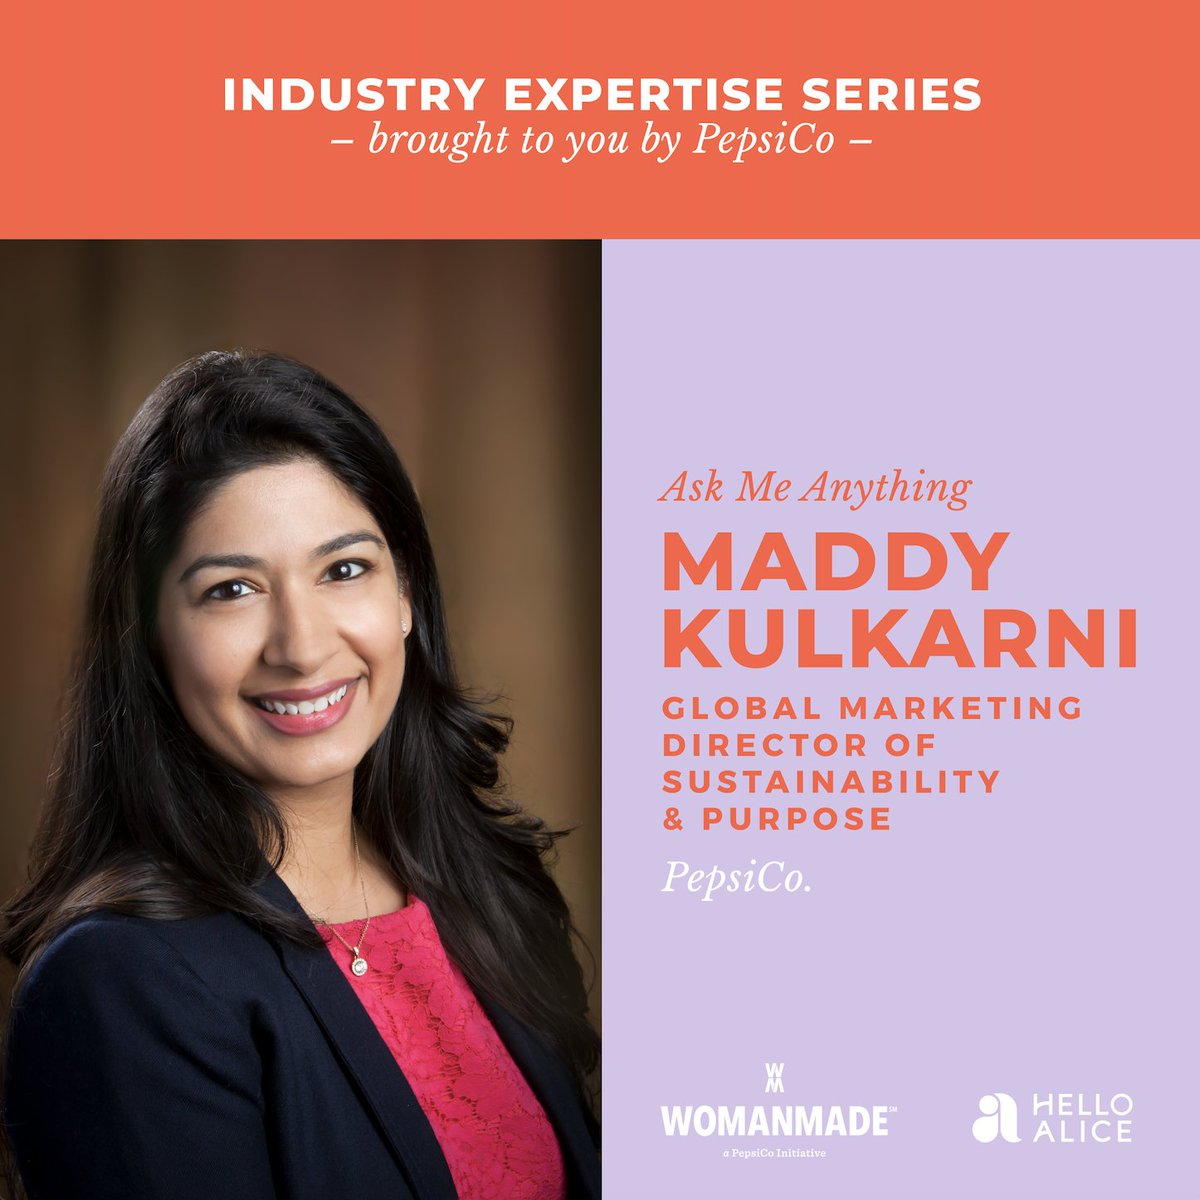 Happing this Friday! Join Maddy Kulkarni of @PepsiCo to discuss global impact and ways your business can giveback to the community. #WomenMade  The session kicks off October 30th at 11:30am PT. Register here: